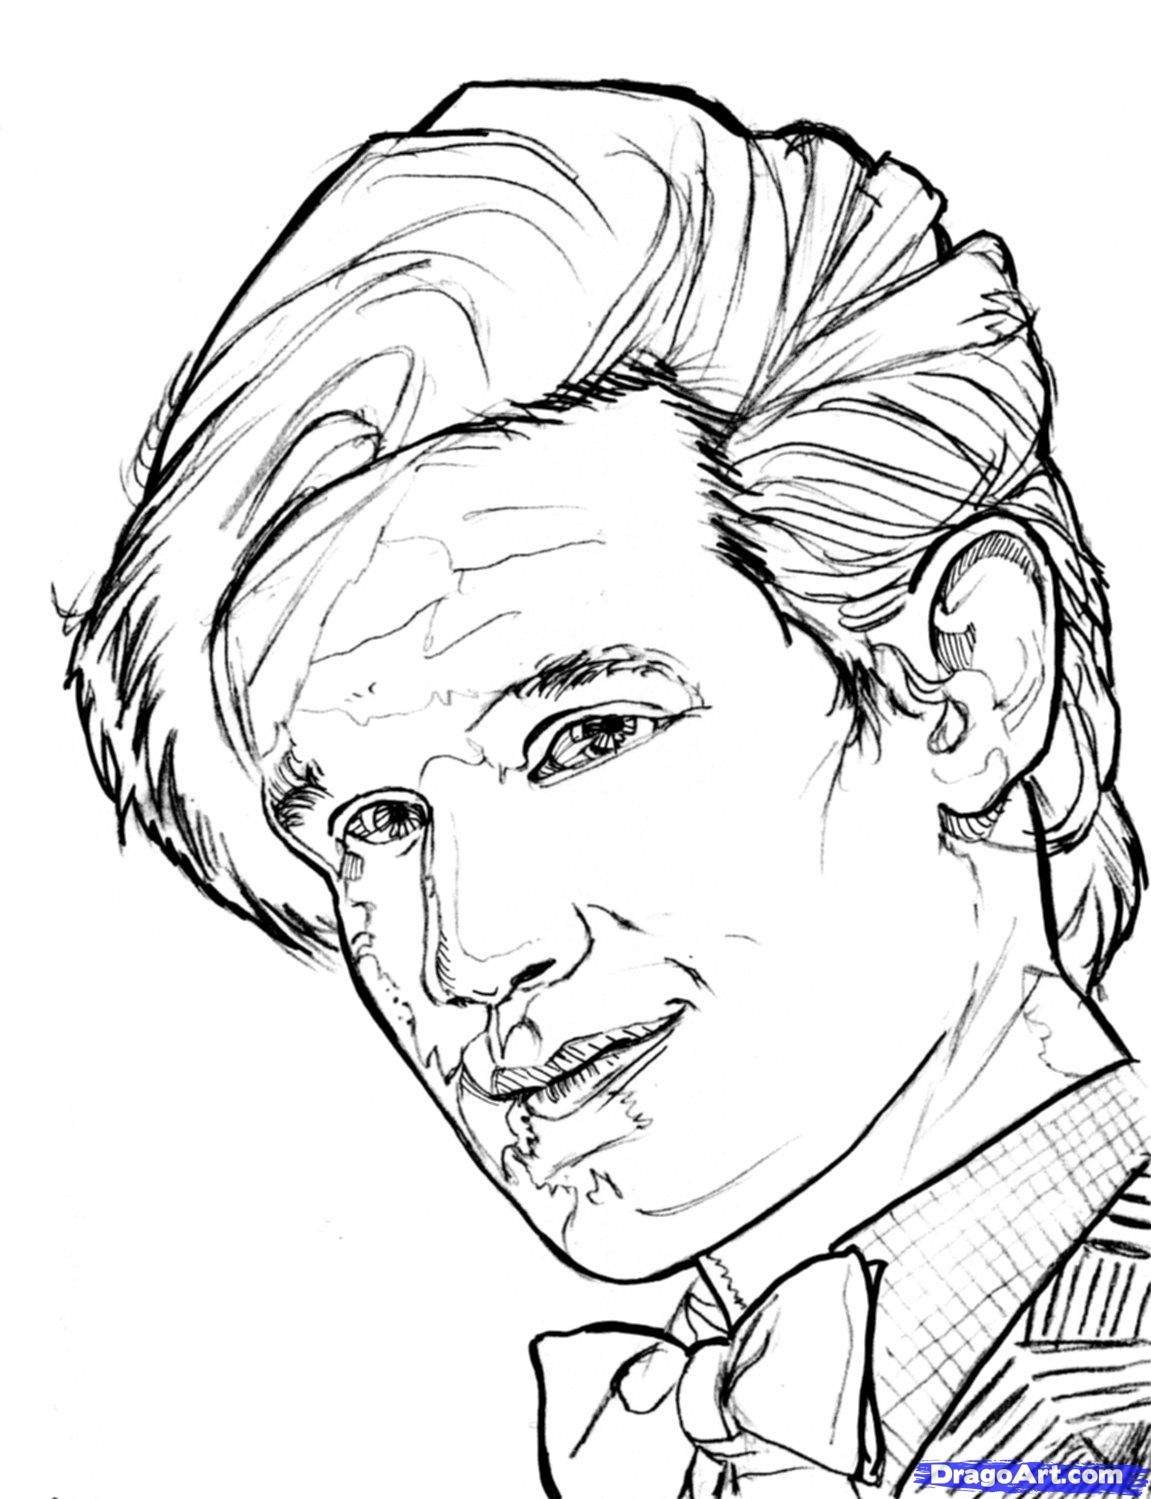 dr facilier coloring pages | doctor who silence Colouring Pages | Doctor who art ...